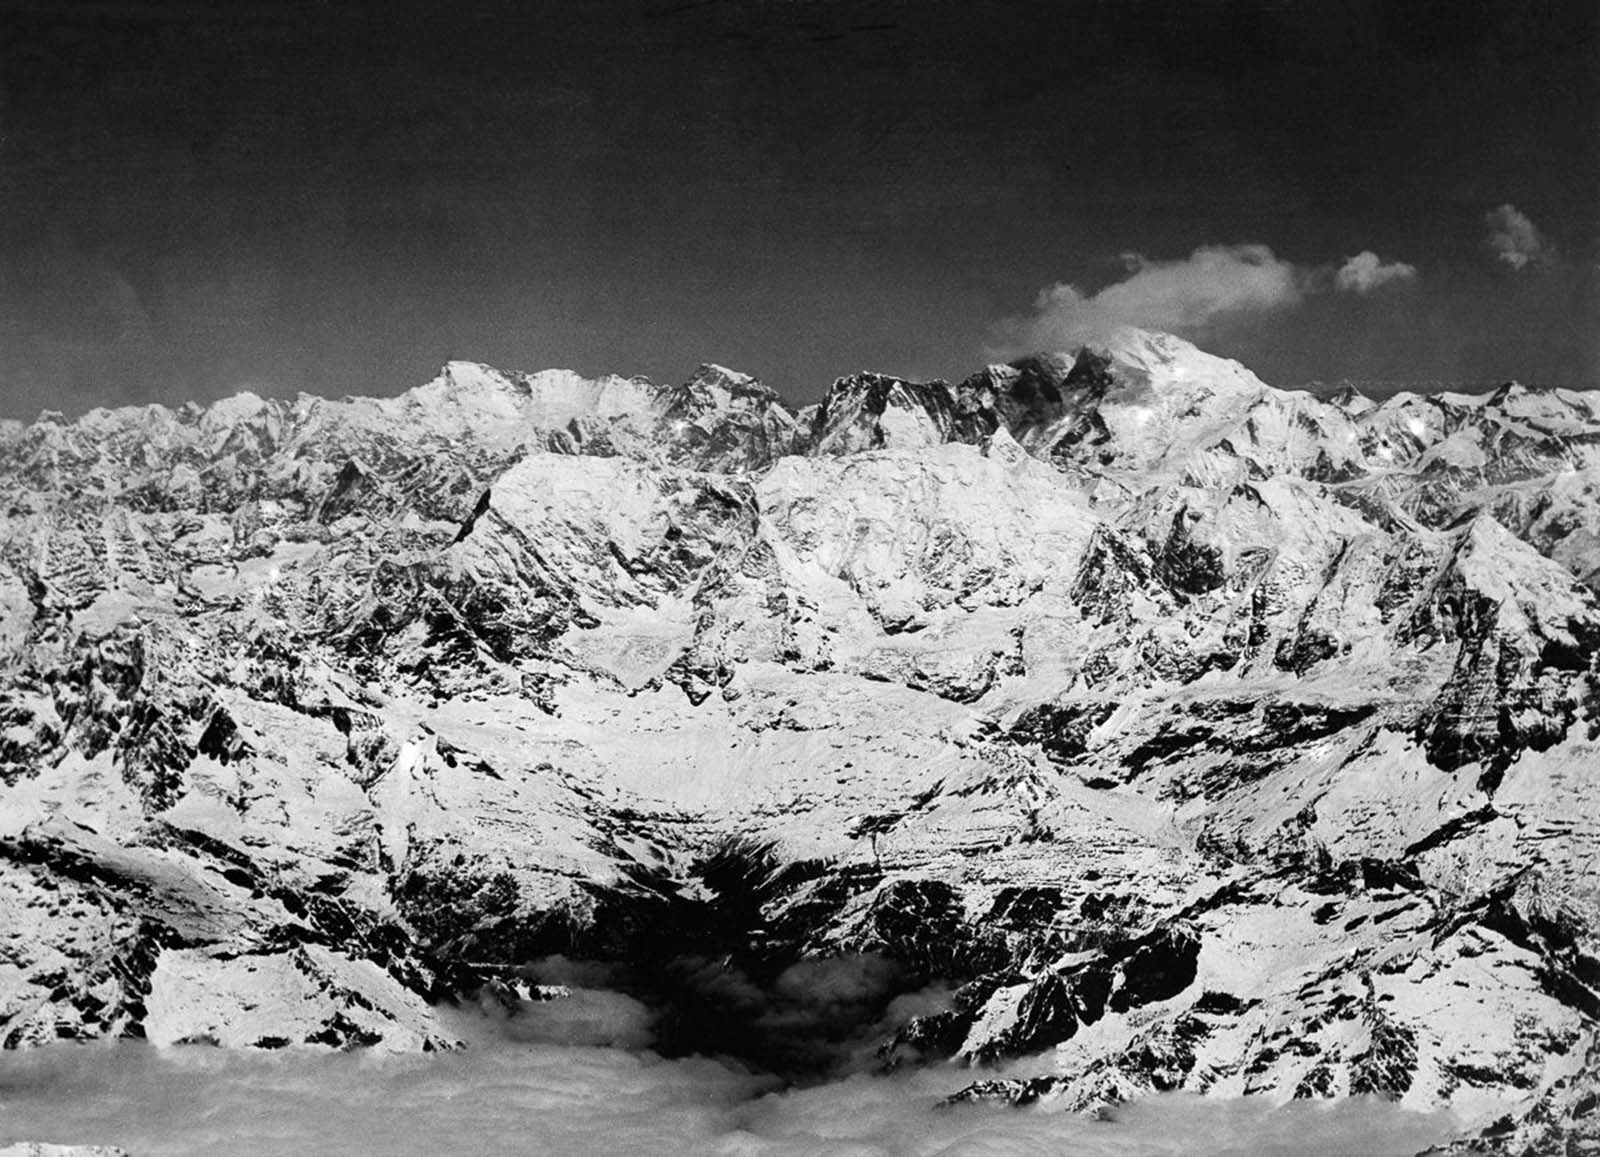 Everest seen from the south.